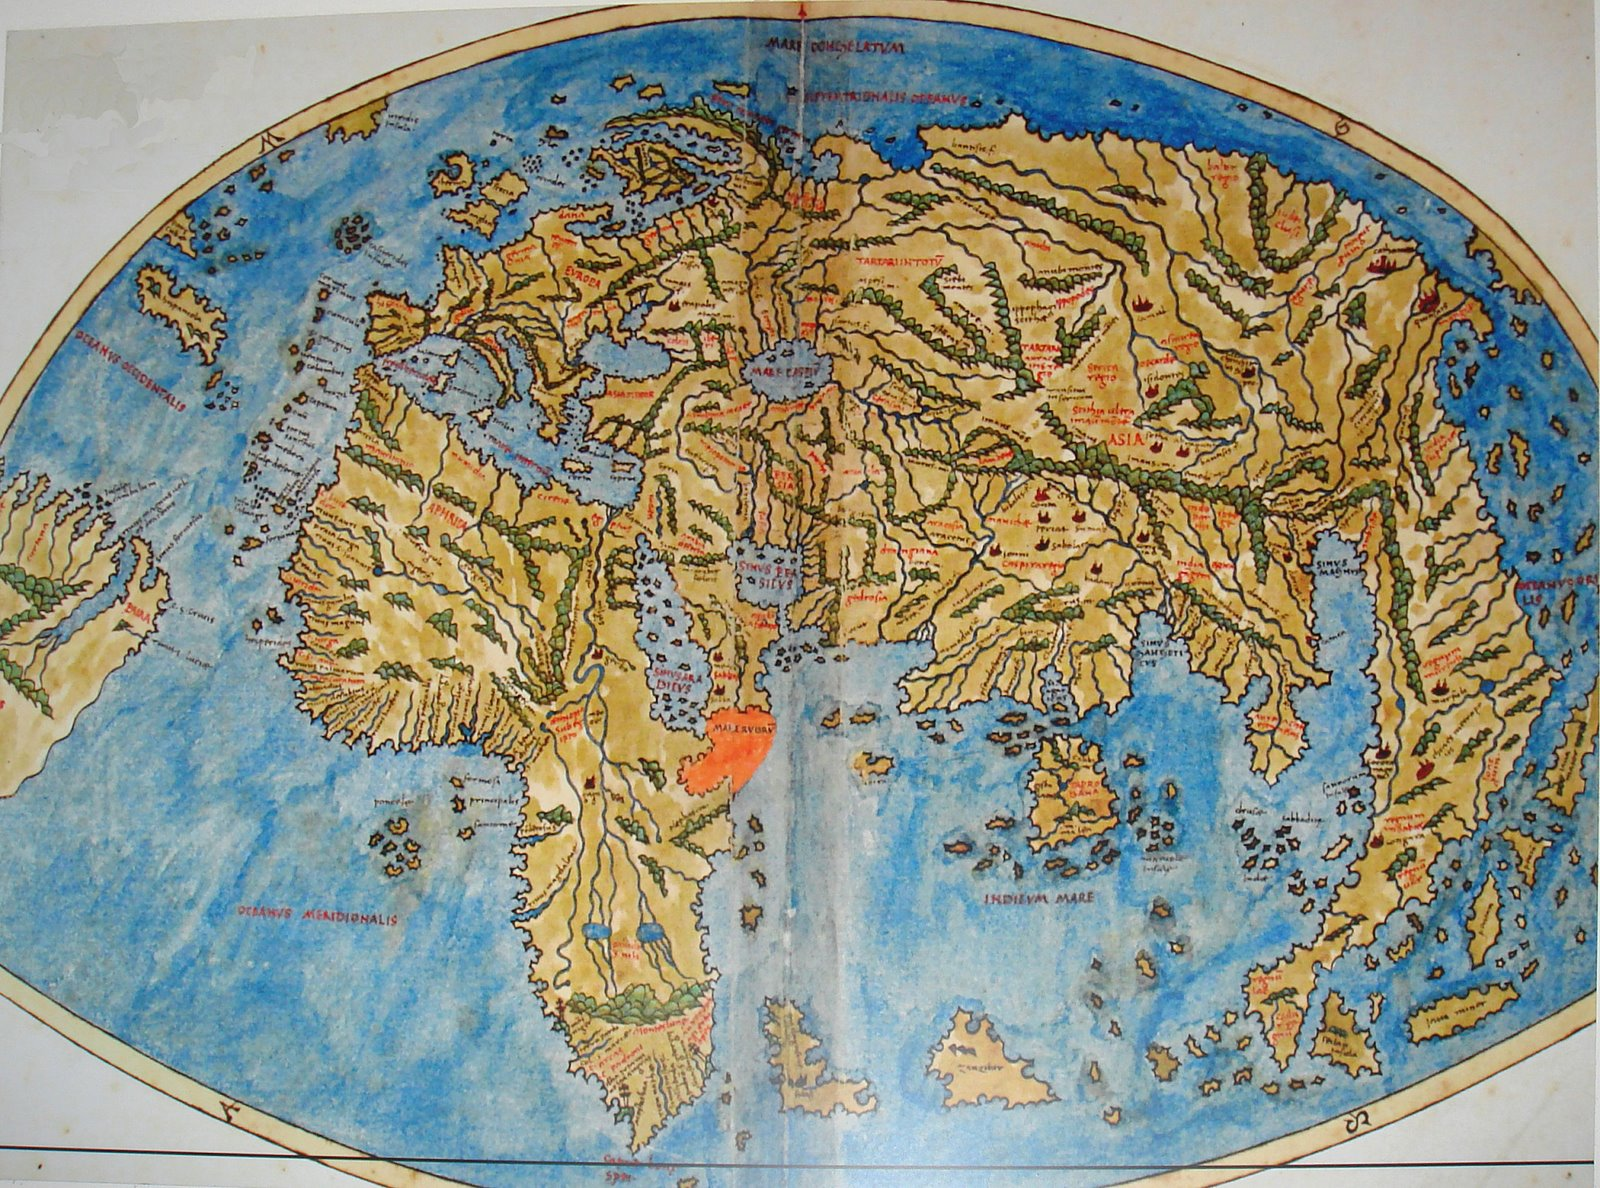 Ancient world maps world map 16th century description world map of pietro coppo 1470 1555 from veniceitaly published in 1520 gumiabroncs Choice Image